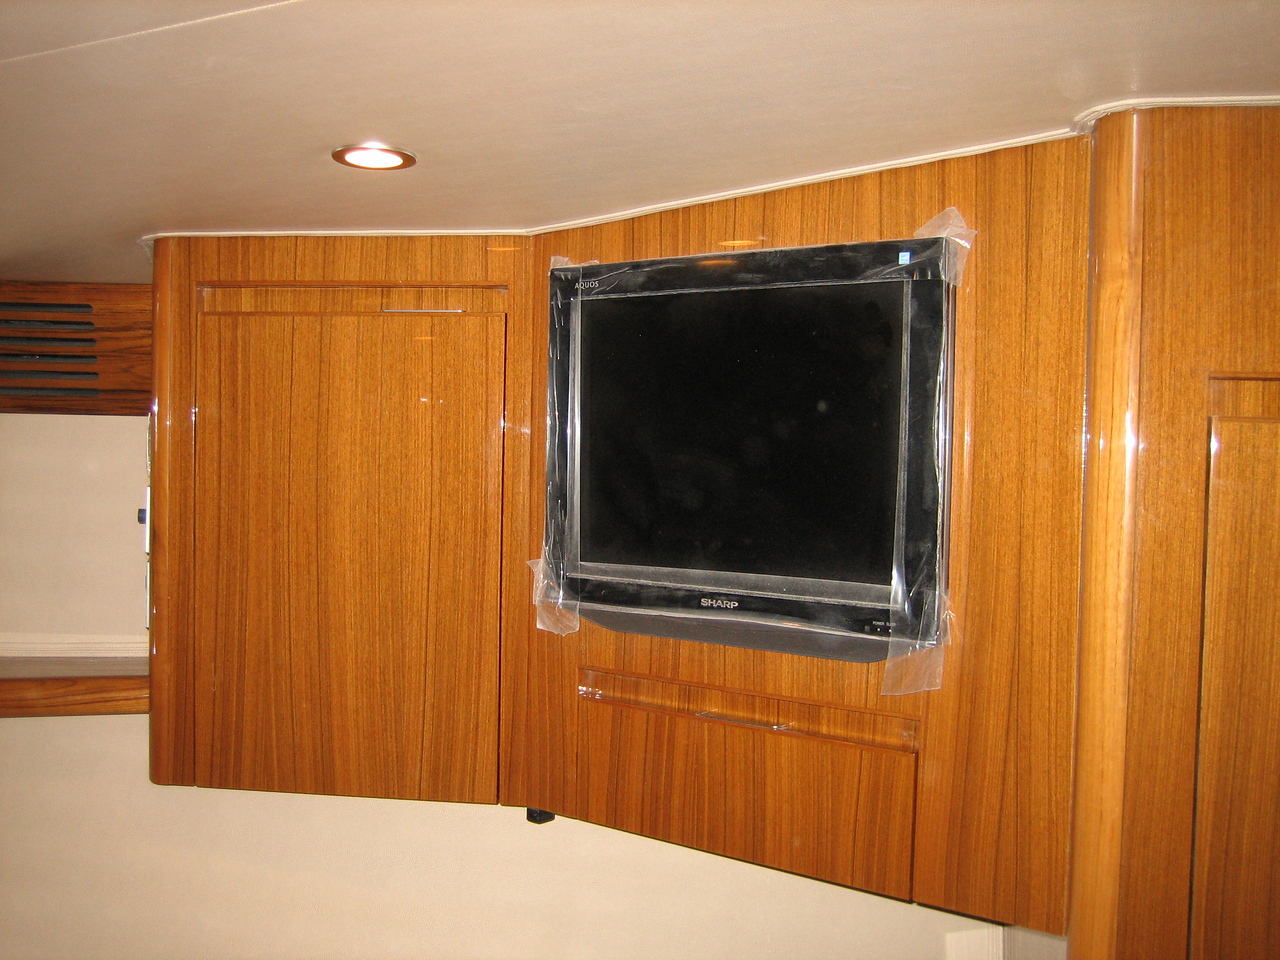 Existing FWD S/R TV